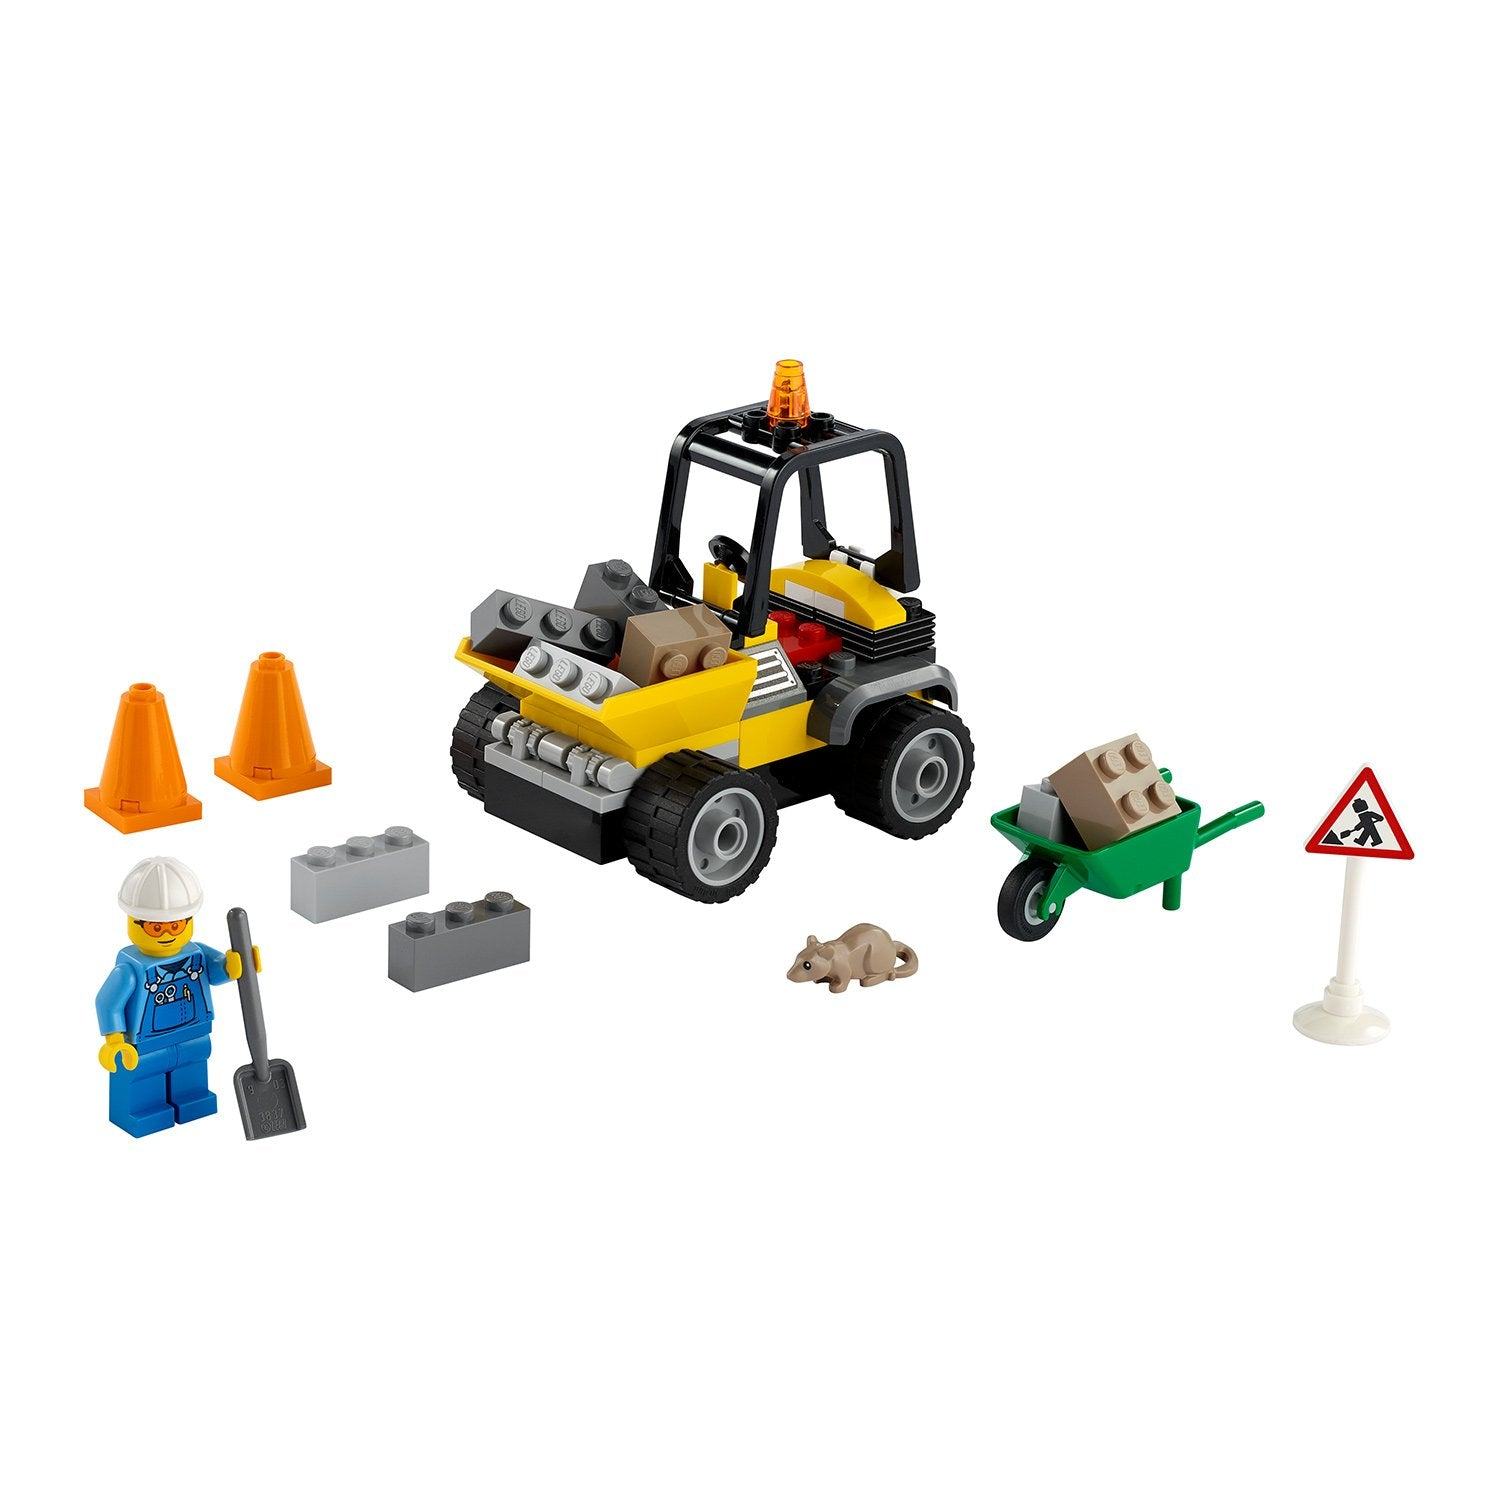 LEGO CITY Roadwork Truck